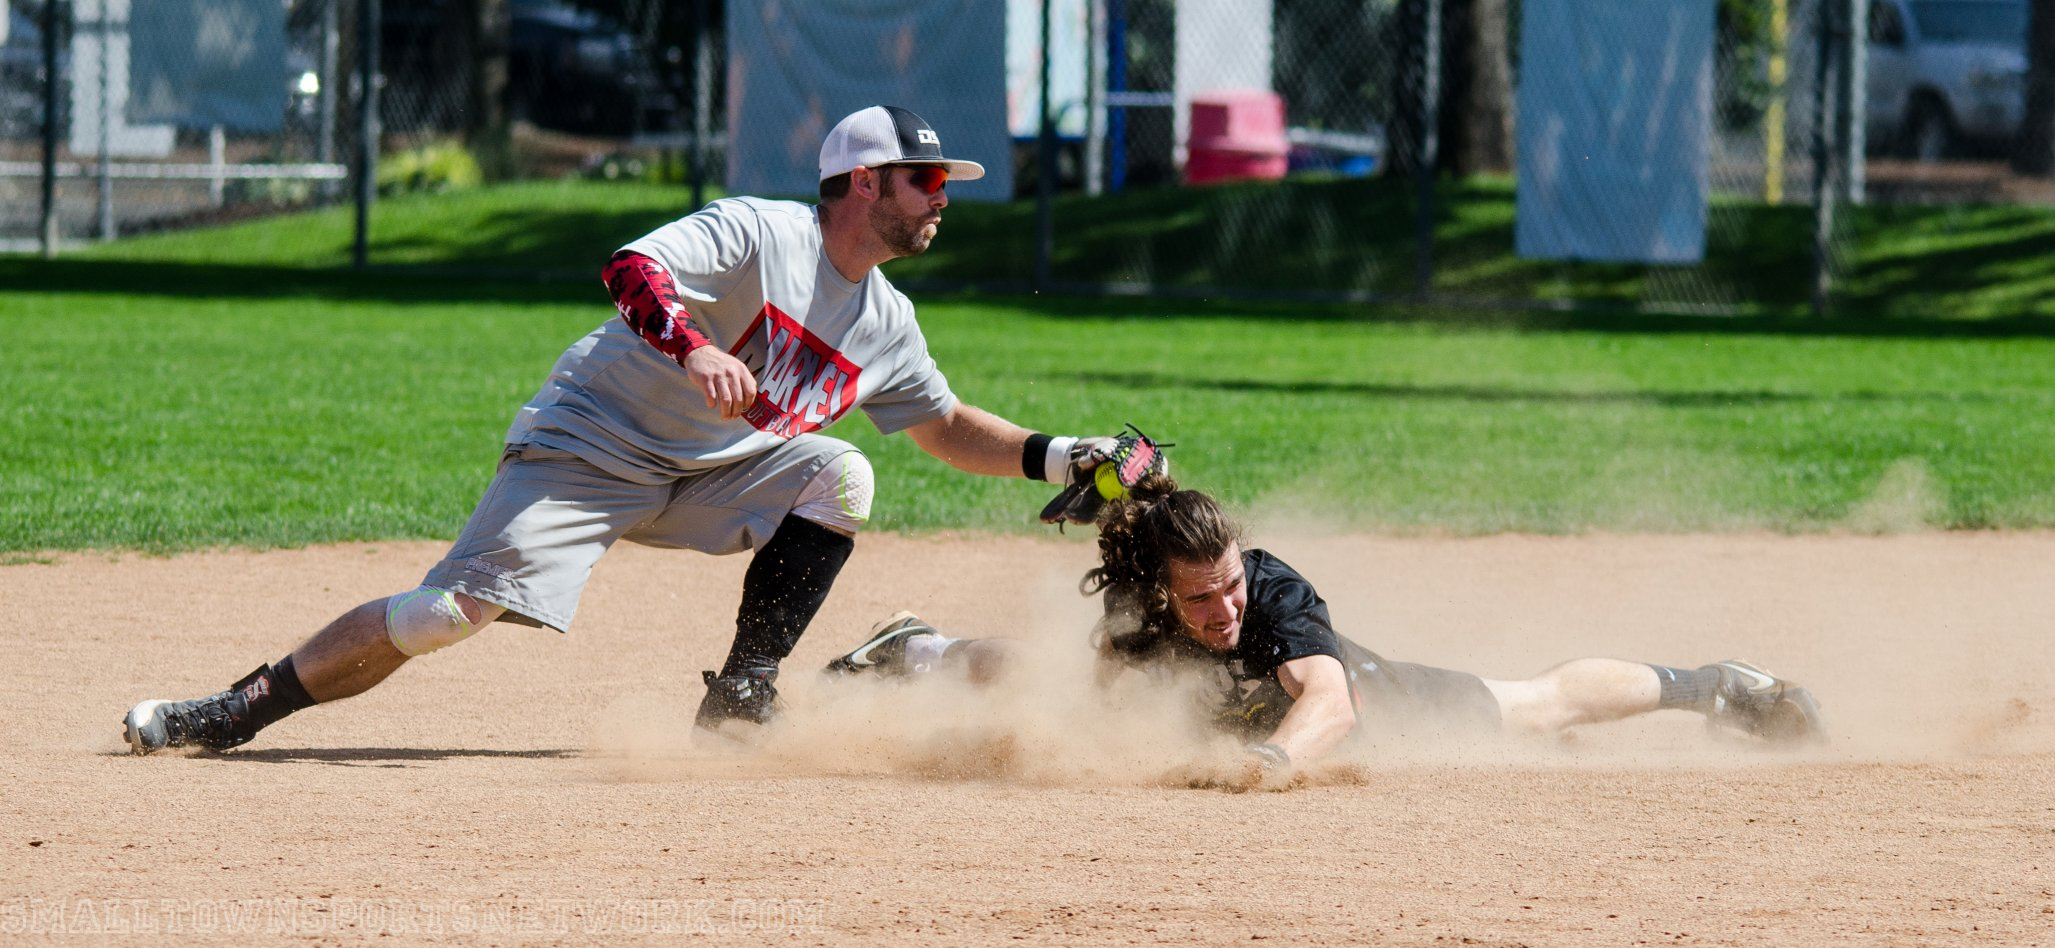 USSSA Men's Slow Pitch State Championship PHOTOS!